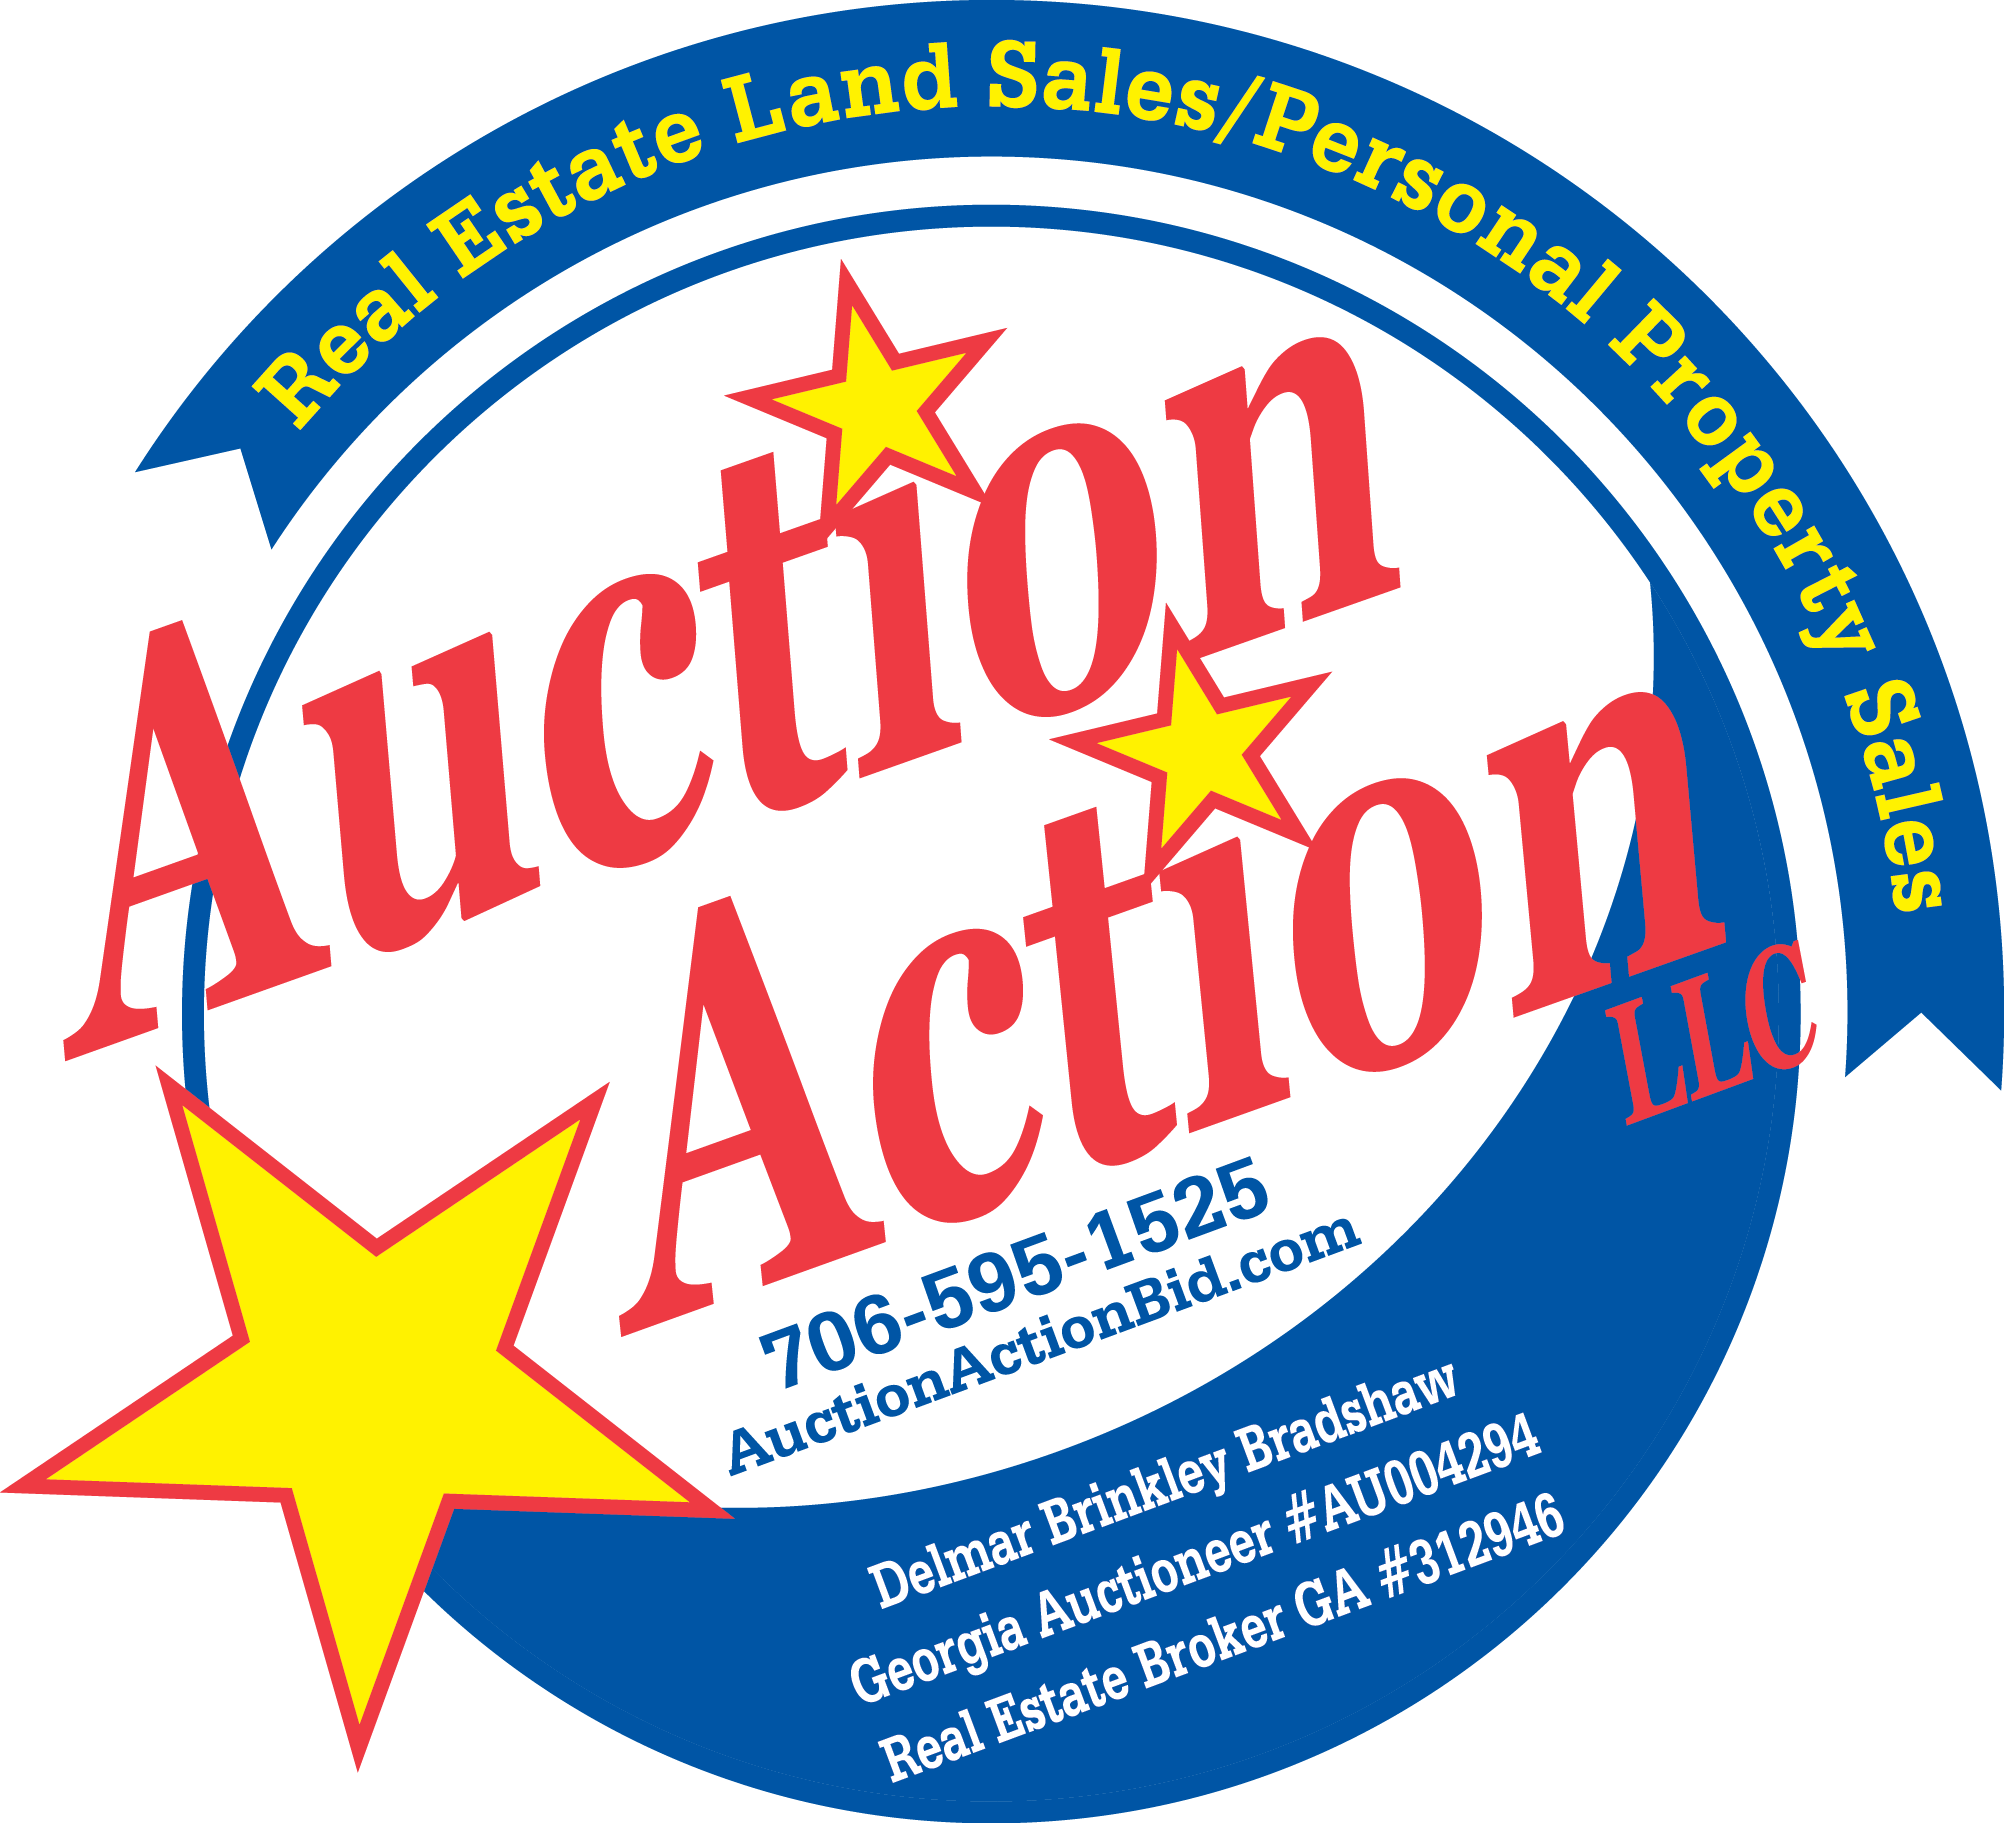 Click here for June 6th Auction